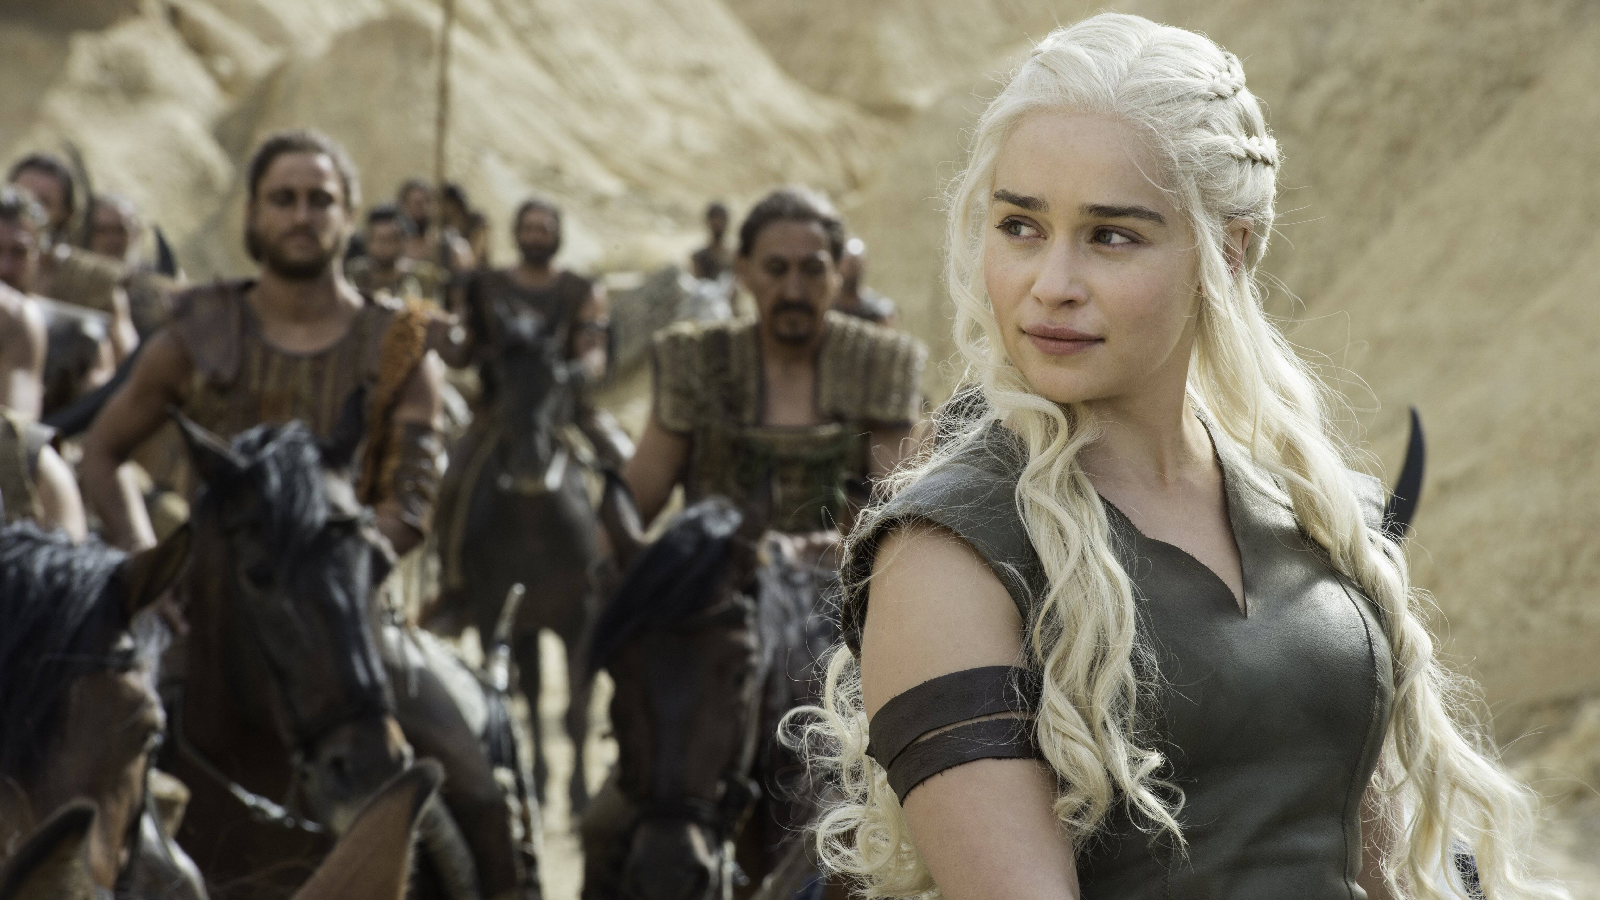 neue Details zur Spin-off-Serie ,,House of the Dragon